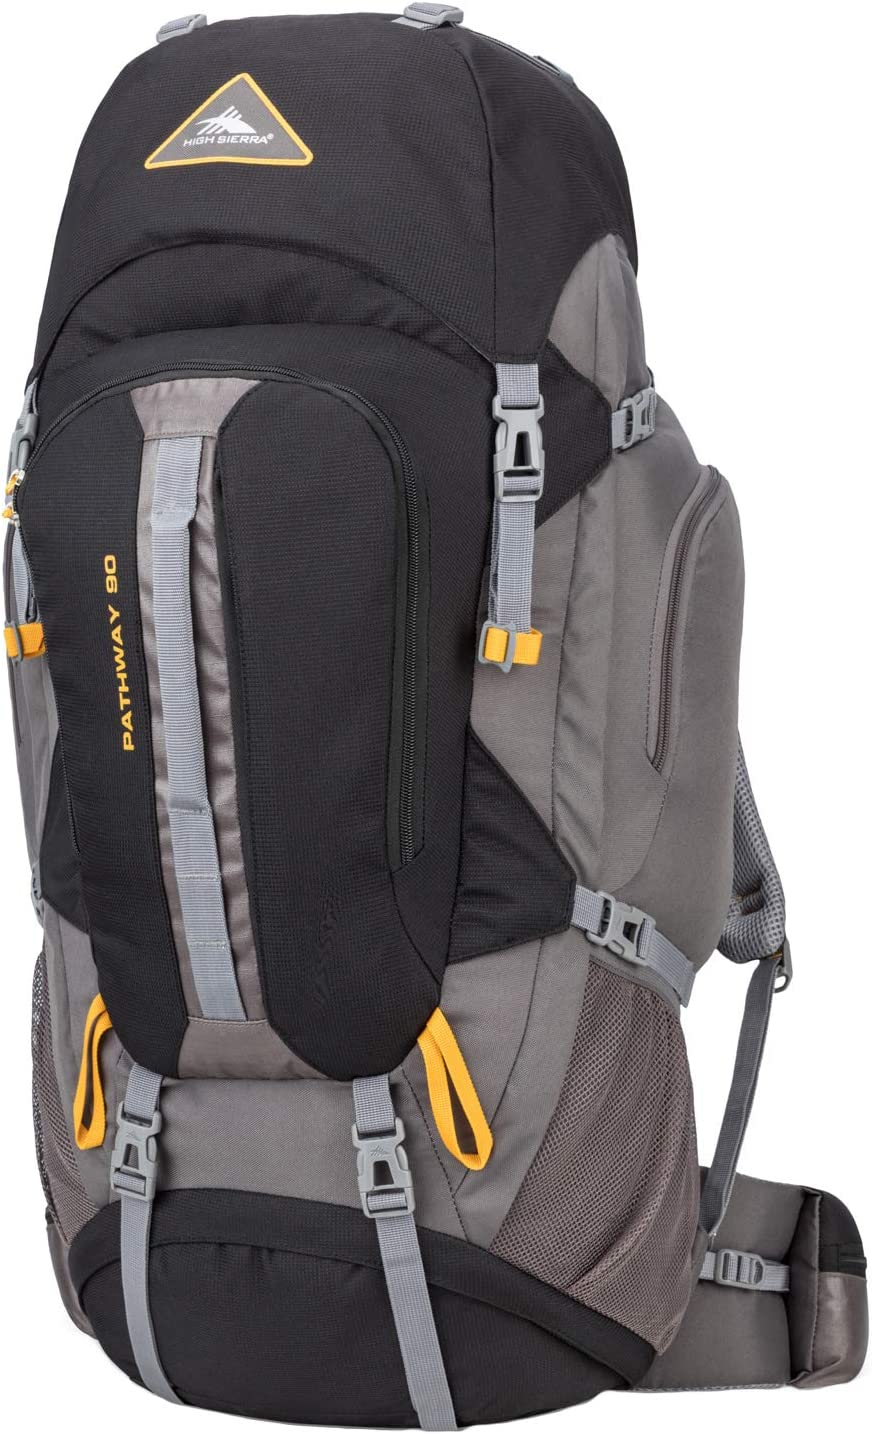 High Sierra Pathway Internal Frame Hiking Backpack 90L – Internal Frame Backpack with Hydration Port – Compatible with 3-Liter Hydration Reservoir – for Hiking, Camping, or Trekking Adventure